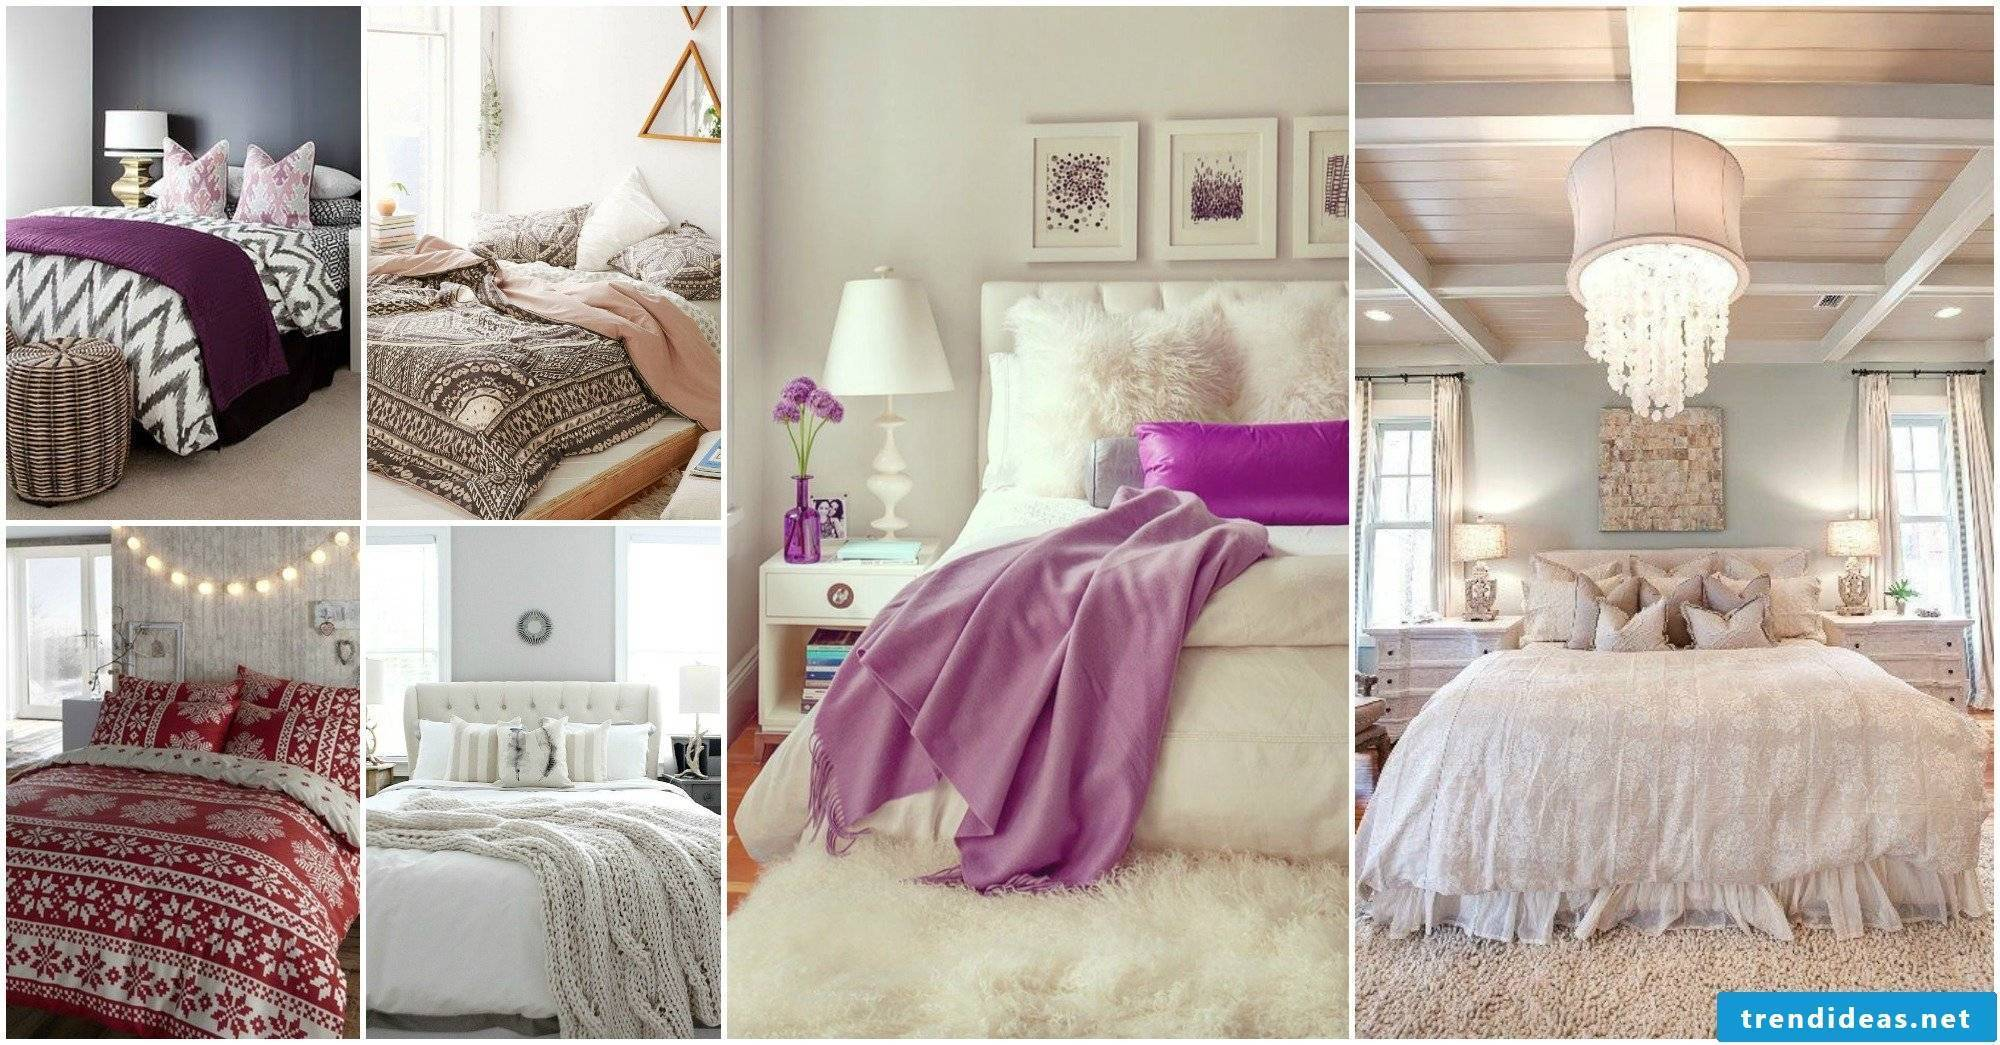 Decorate bedroom modern with fur